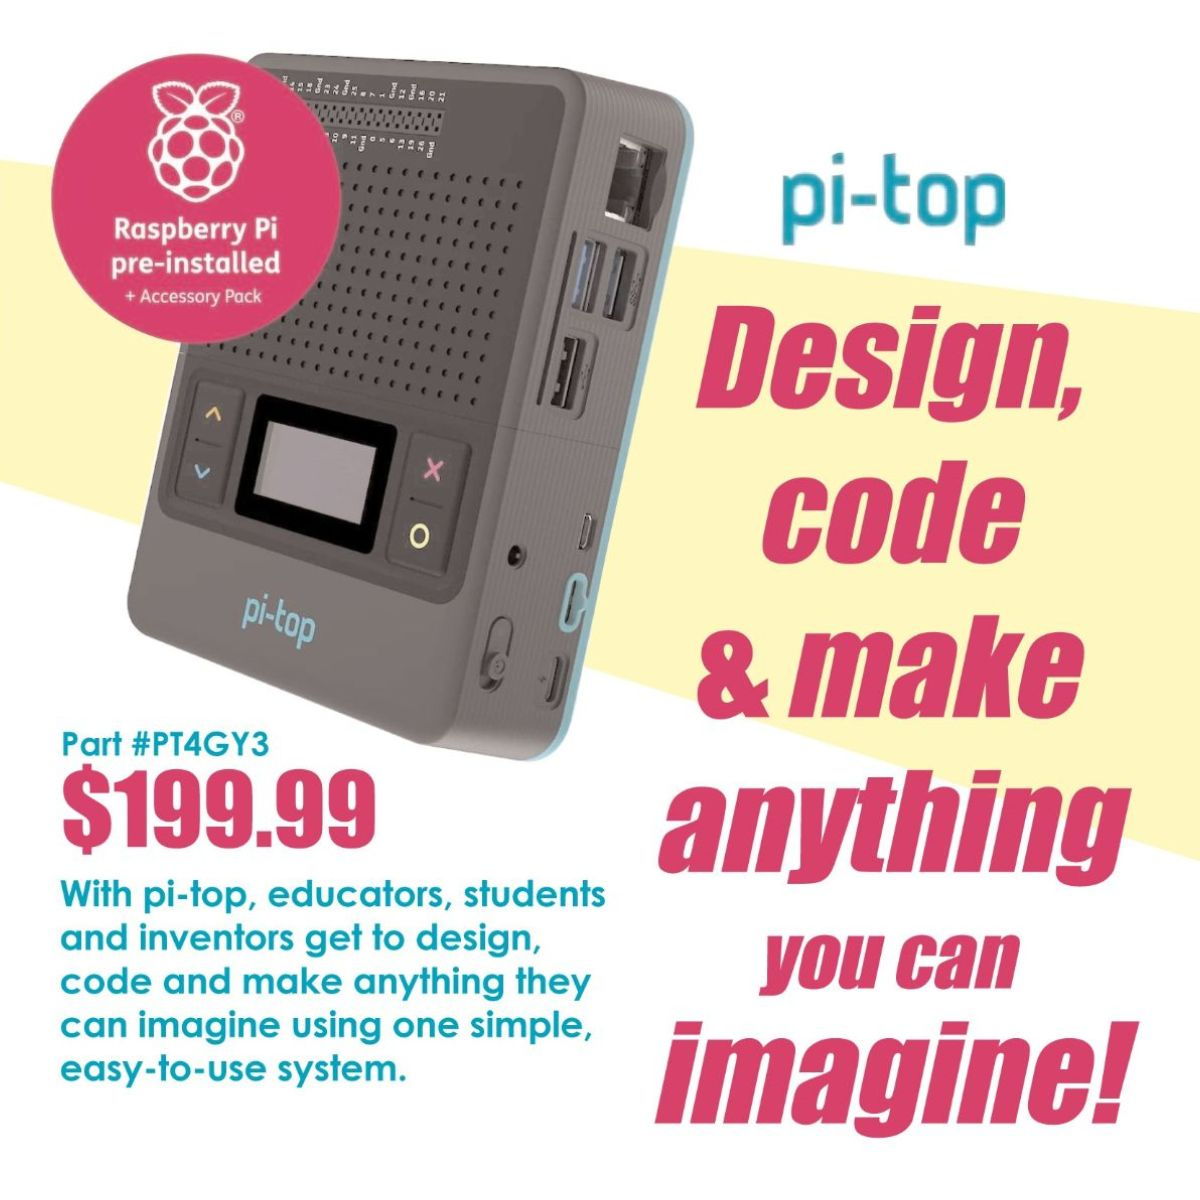 Join pi-top this Thursday, 2/18 at 3:30pm CST to review how job markets will change due to technology and how educators can utilize technology to adapt and prepare students. Attendees will be entered to win a pi-top 4 and Foundation Kit! Register at https://t.co/HNz9ph4qUf https://t.co/N3SlA0ApZr